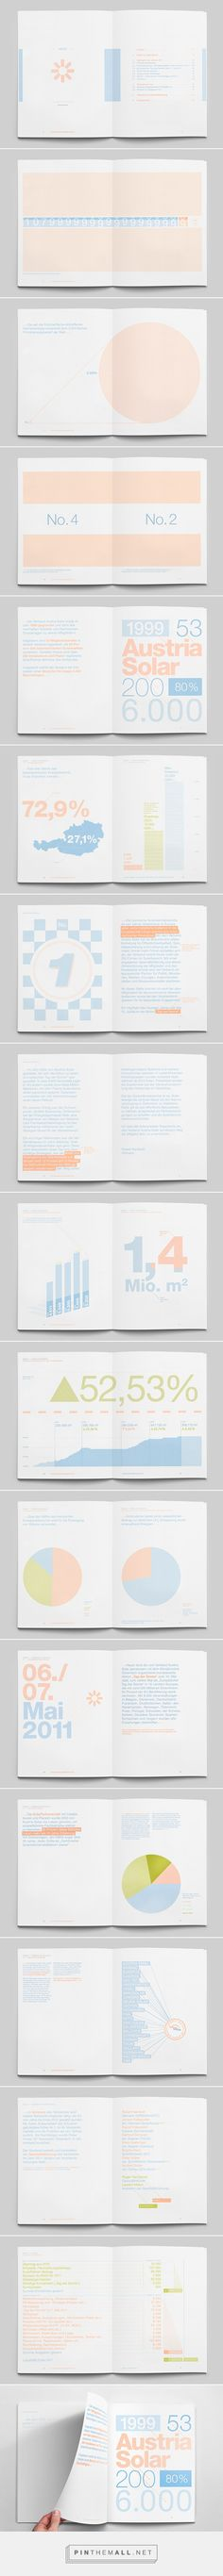 The Solar Annual Report, powered by the sun on Behance